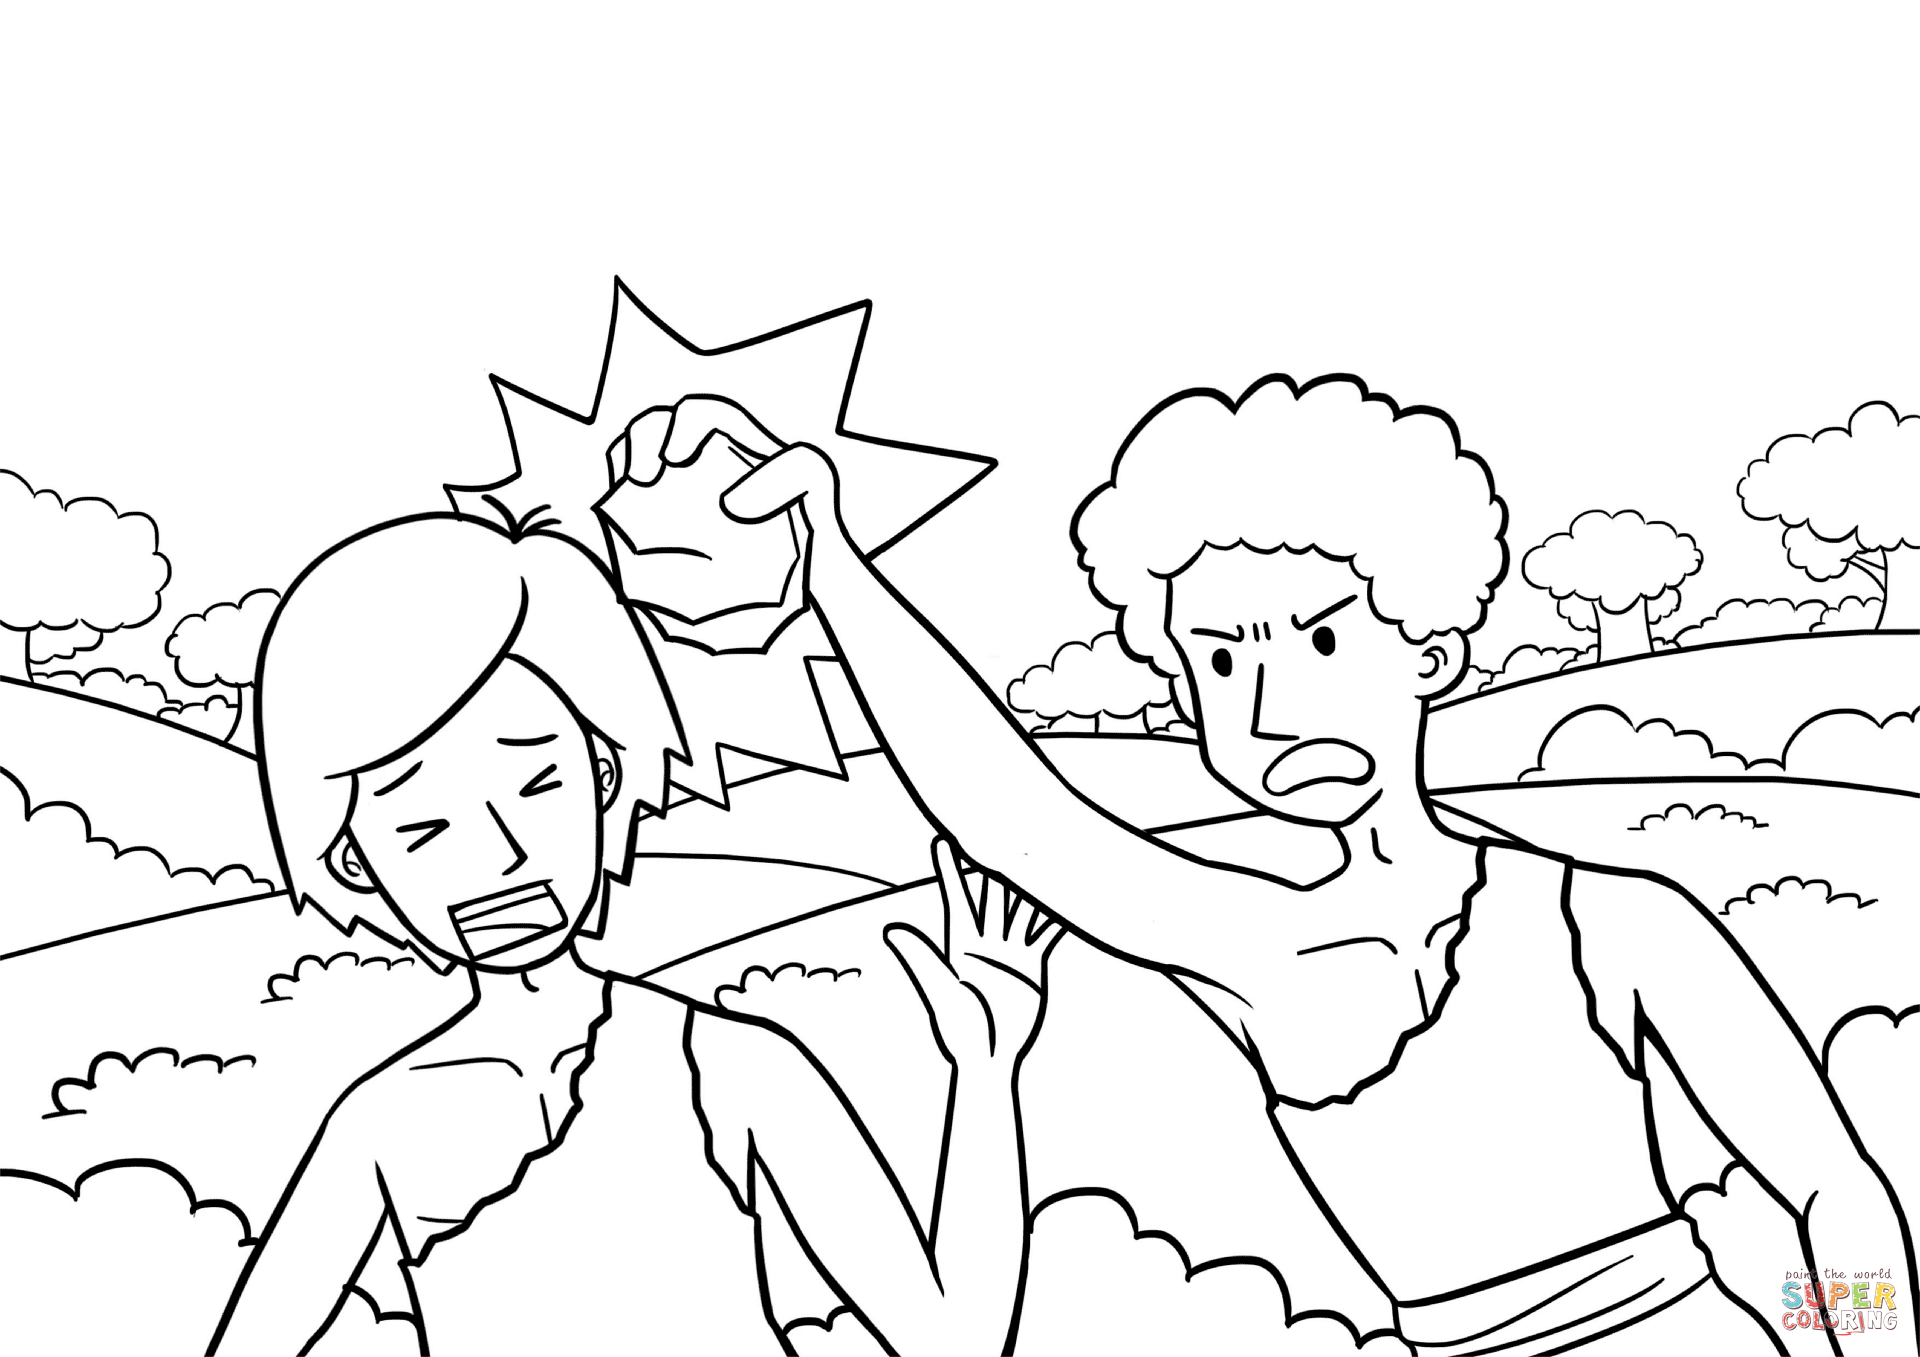 79 Adam And Eve Cain And Abel Coloring Page